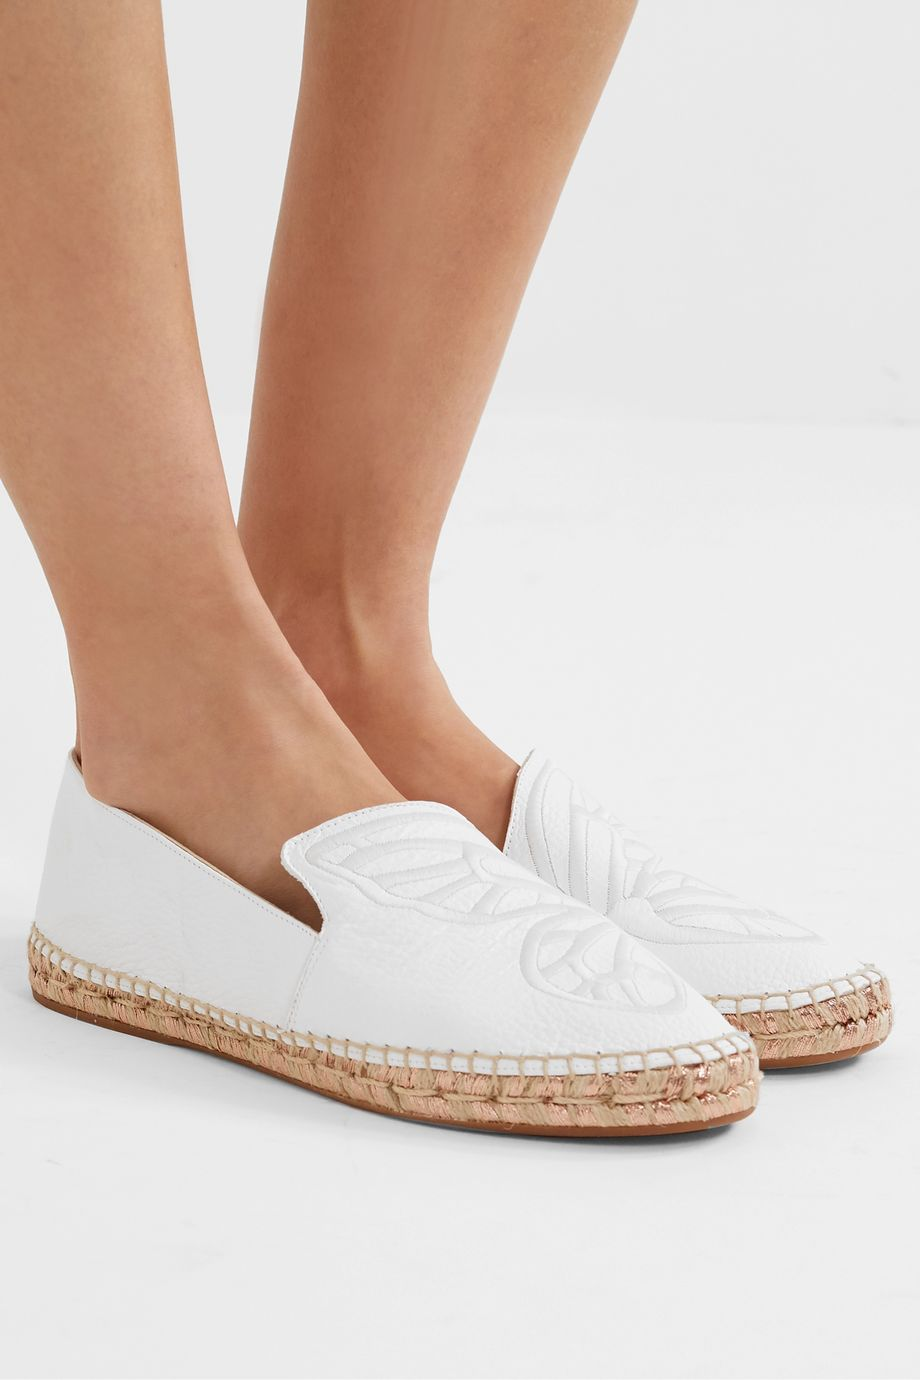 Sophia Webster Butterfly embroidered textured-leather espadrilles